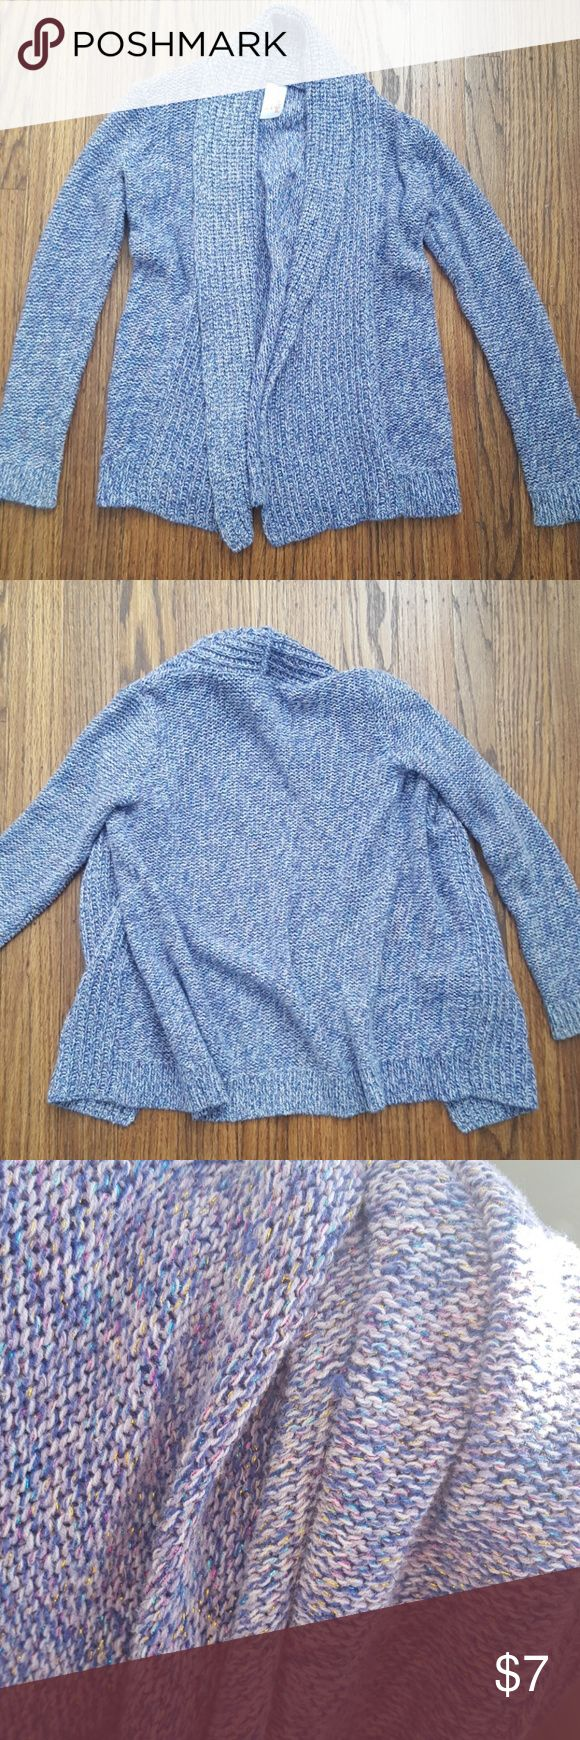 Girls Sparkly Lavender Open Shawl Cardigan 6 6x Metallic colored yarns threaded through gives this cozy lavender cardi a cute sparkle effect. Cotton blend. Good preowned condition. Light wear to sleeve cuffs. cat & jack Shirts & Tops Sweaters